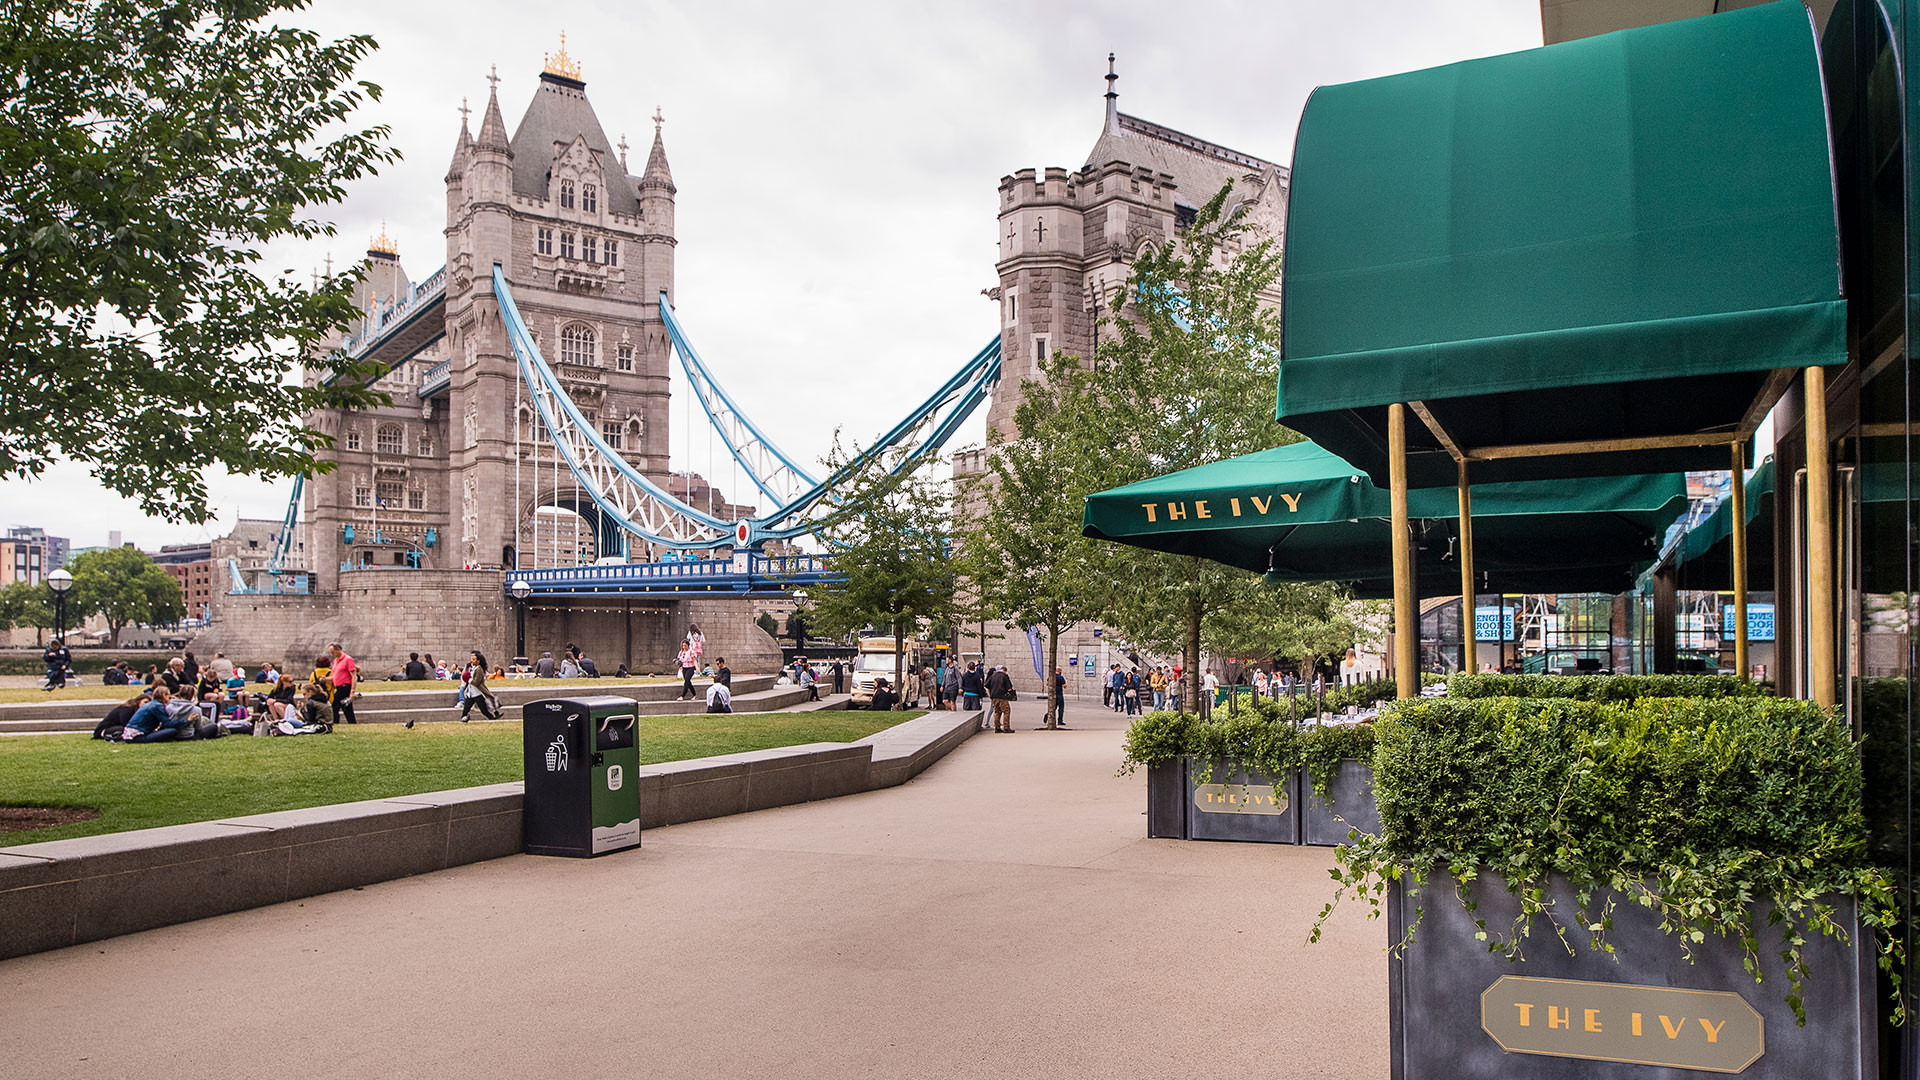 The outside of The Ivy by Tower Bridge